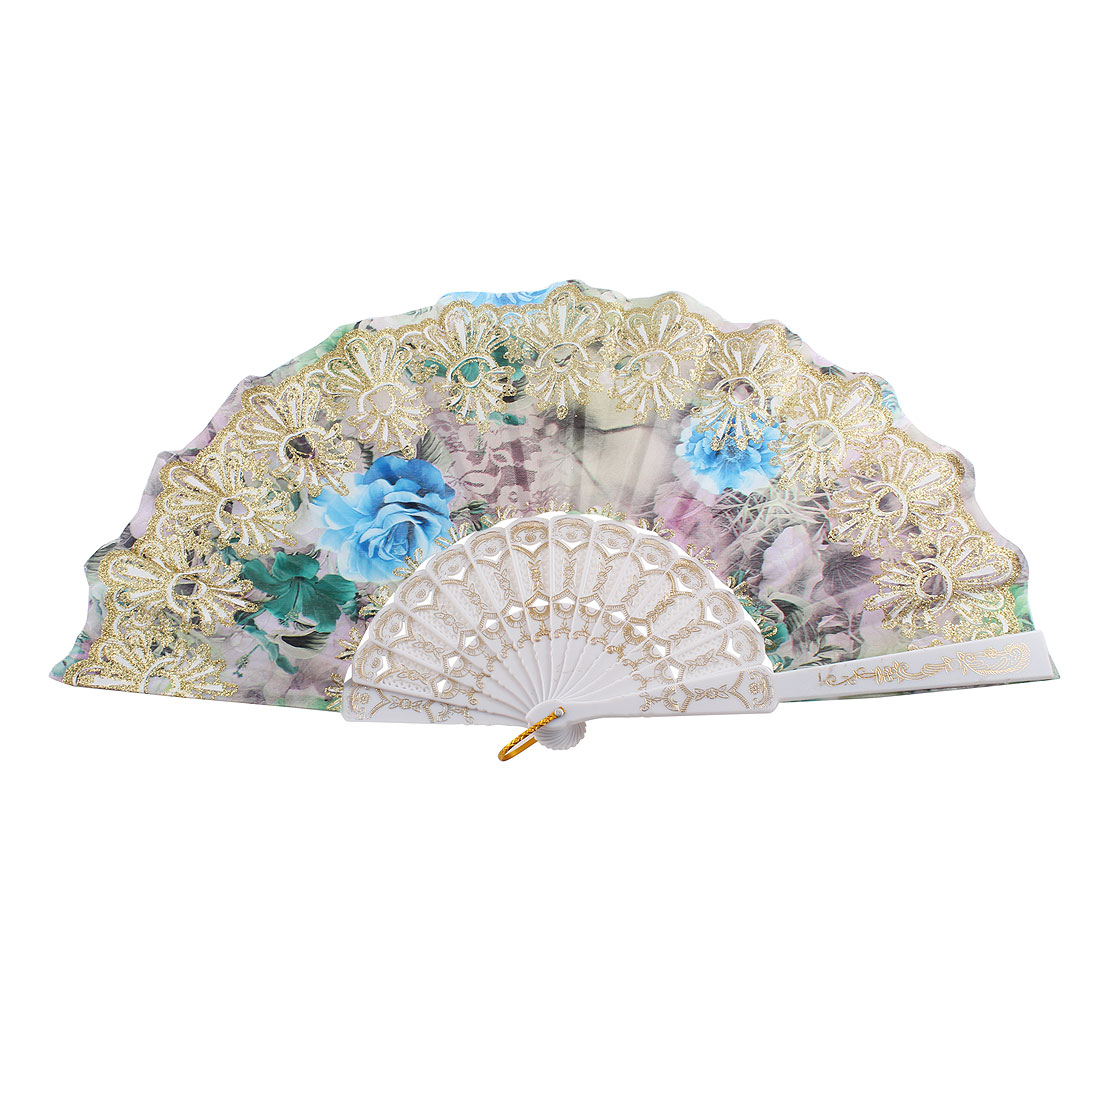 Gold Tone Glittery Powder Accent Chinese Style Rose Print Foldable Hand Fan